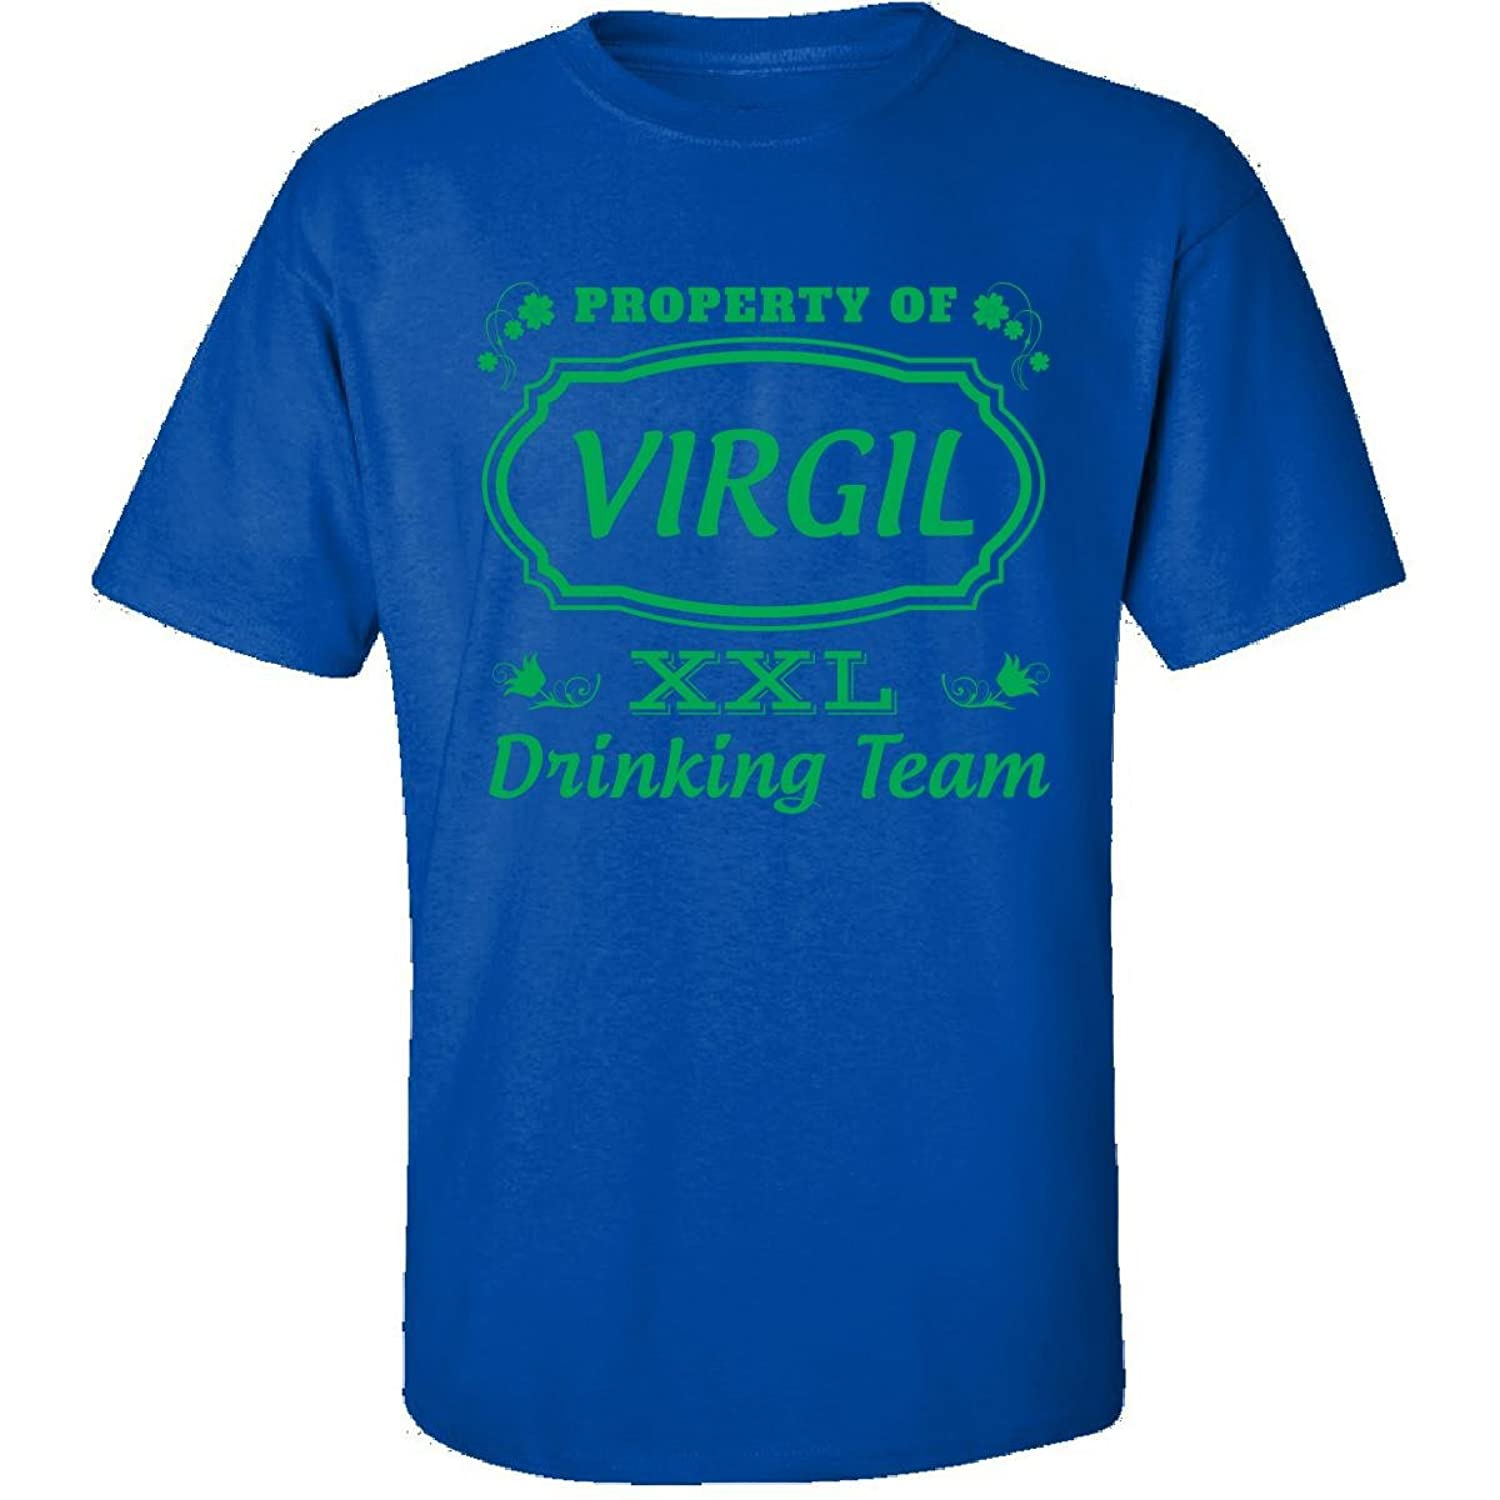 Property Of Virgil St Patrick Day Beer Drinking Team - Adult Shirt